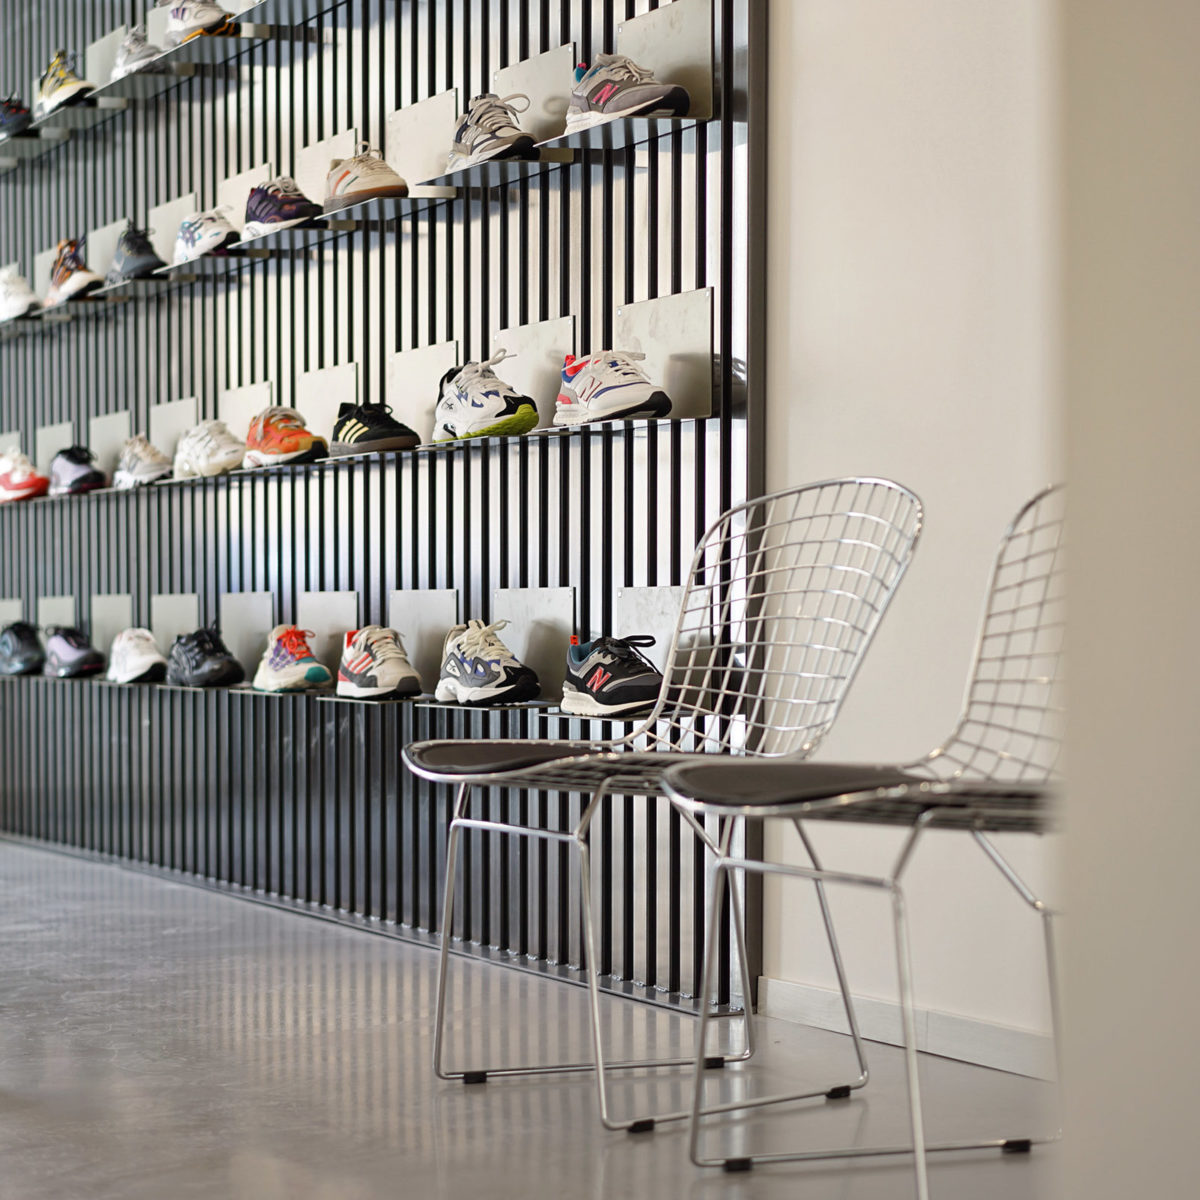 NOVOID KICKS BOUTIQUE SNEAKERS AIX EN PROVENCE